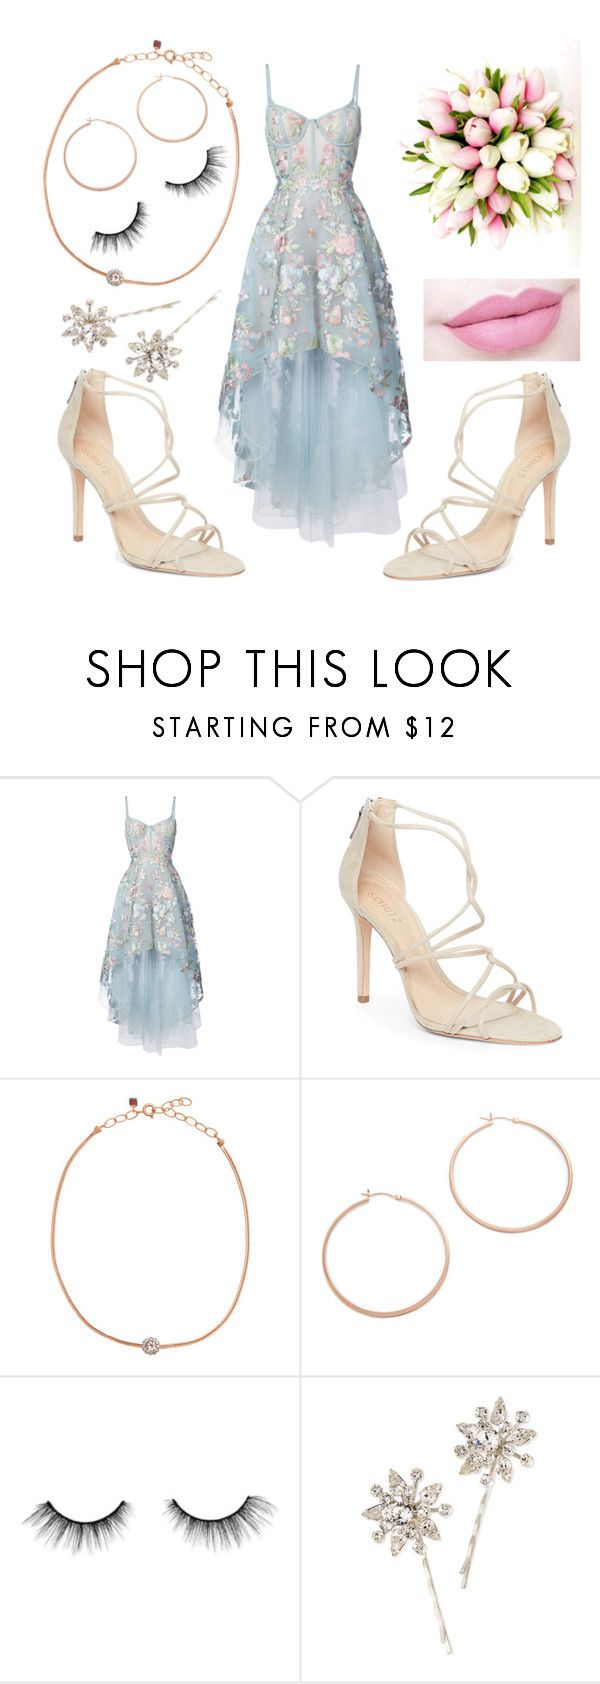 """""""Character"""" by shalagna ❤ liked on Polyvore featuring Notte by Marchesa, Schutz, Selim Mouzannar, Jennifer Zeuner, tarte, Anastasia Beverly Hills and Jennifer Behr"""